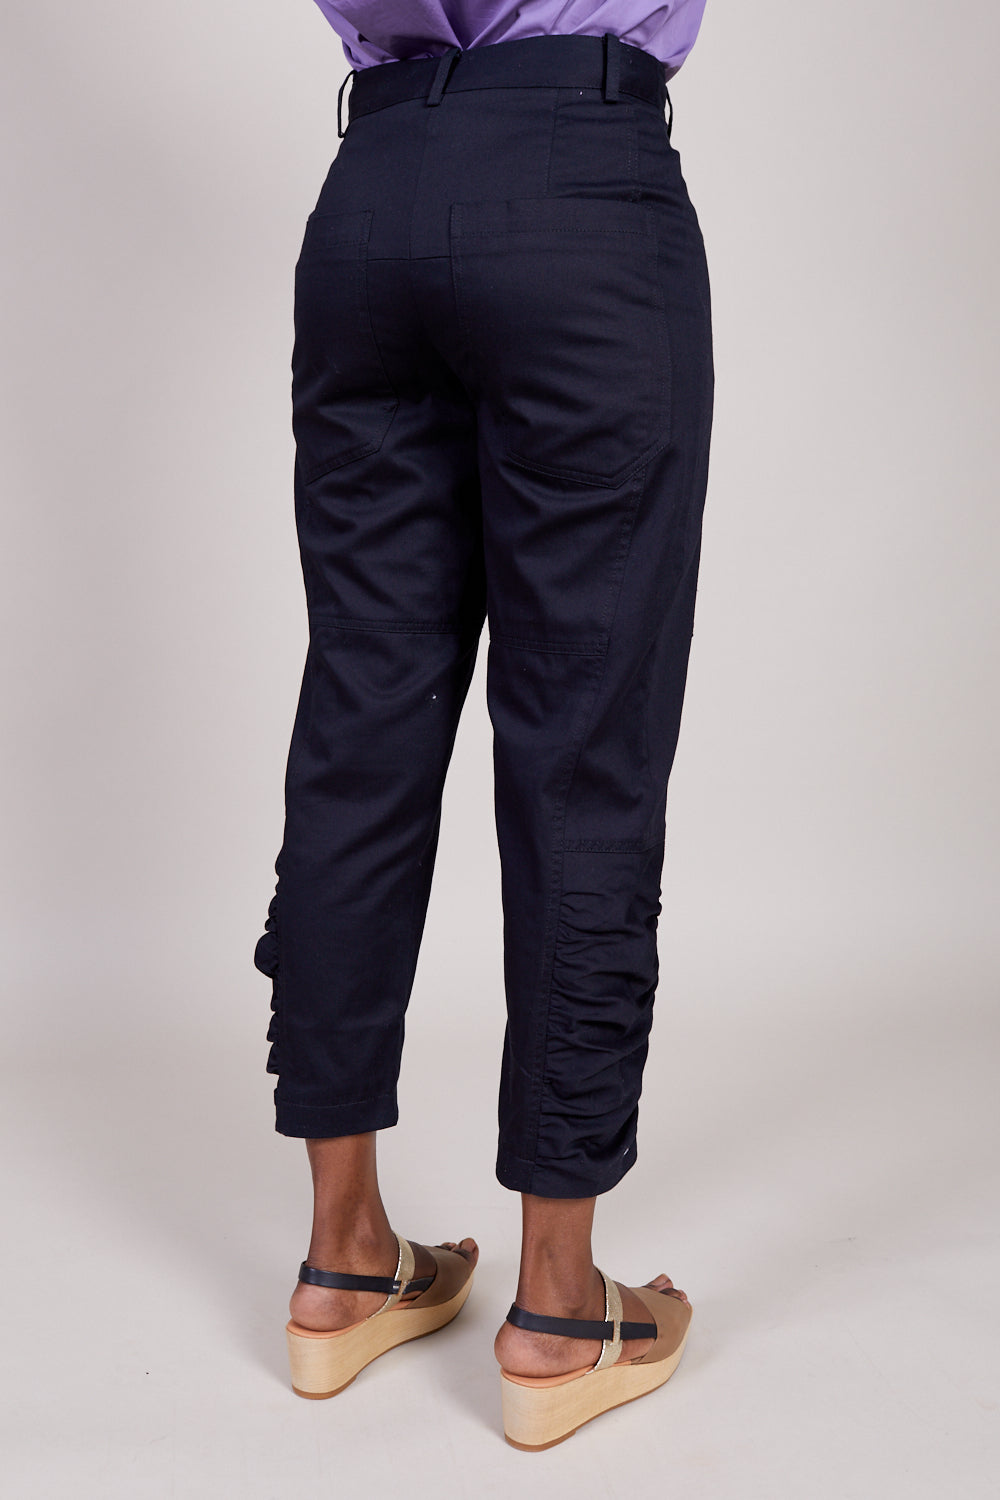 Tibi Harrison Chino Ruched Pant in Black - Vert & Vogue